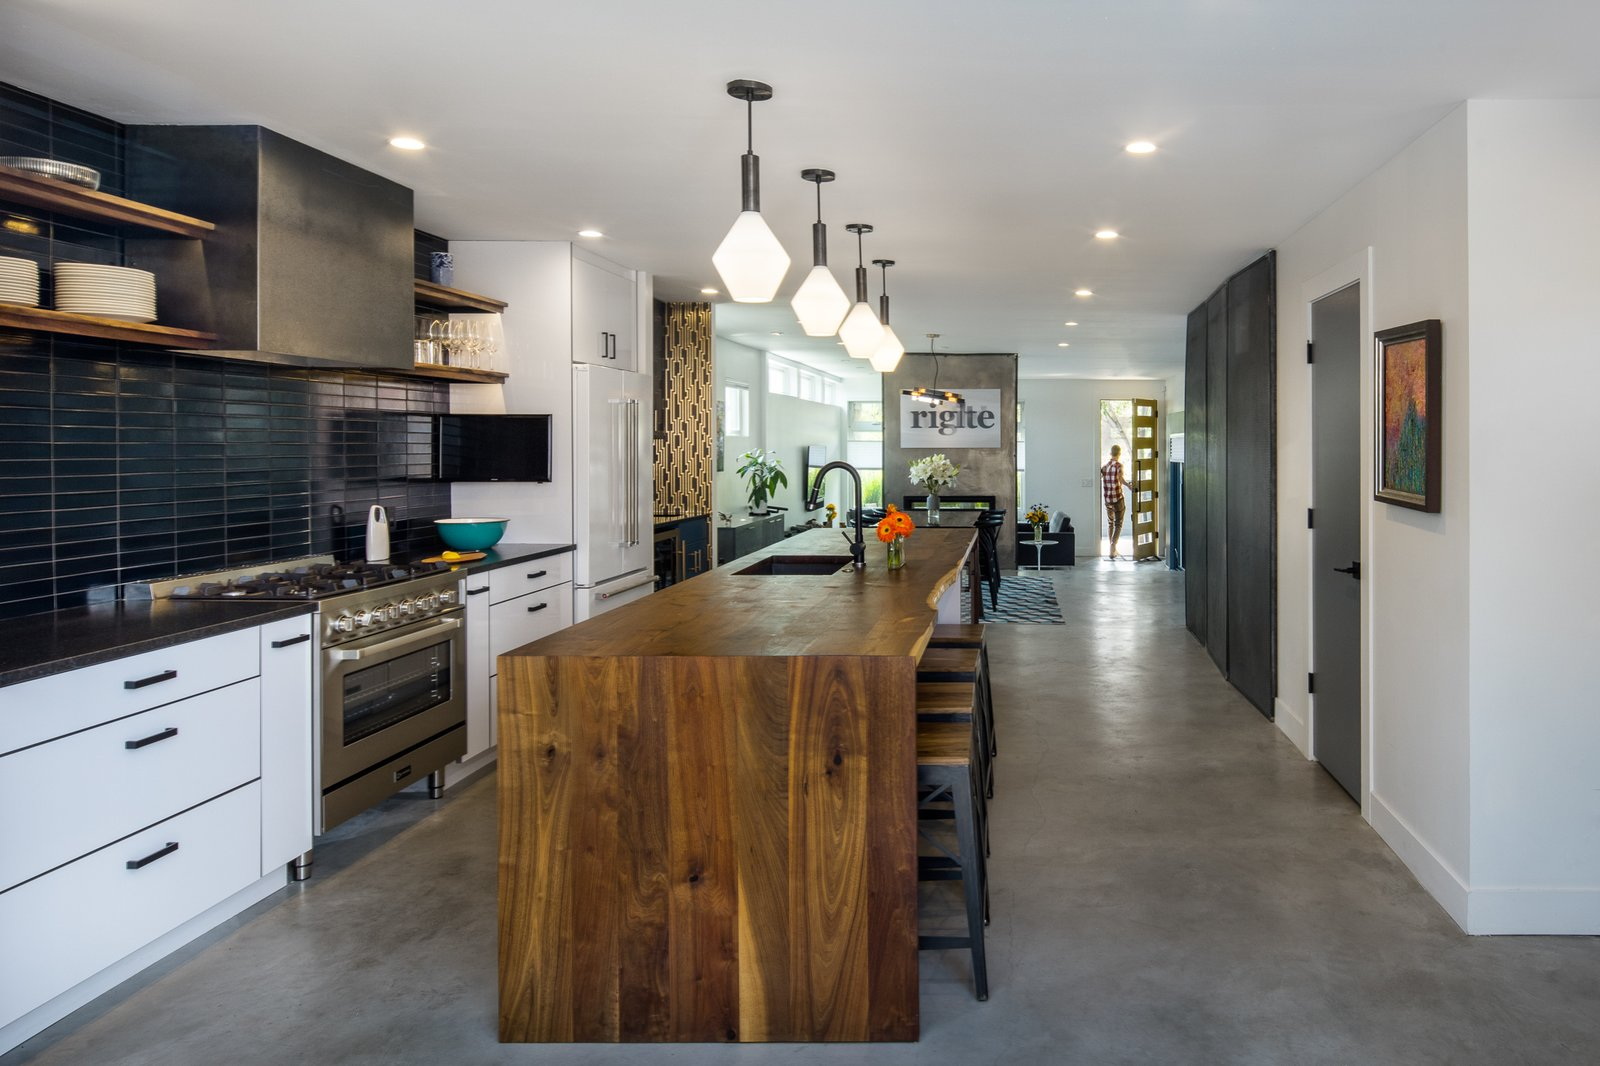 Kitchen, Wood, Pendant, Refrigerator, White, Concrete, Stone Tile, Range, and Undermount Kitchen with live edge walnut island slab  Kitchen Stone Tile White Photos from Lawrence Street Residence